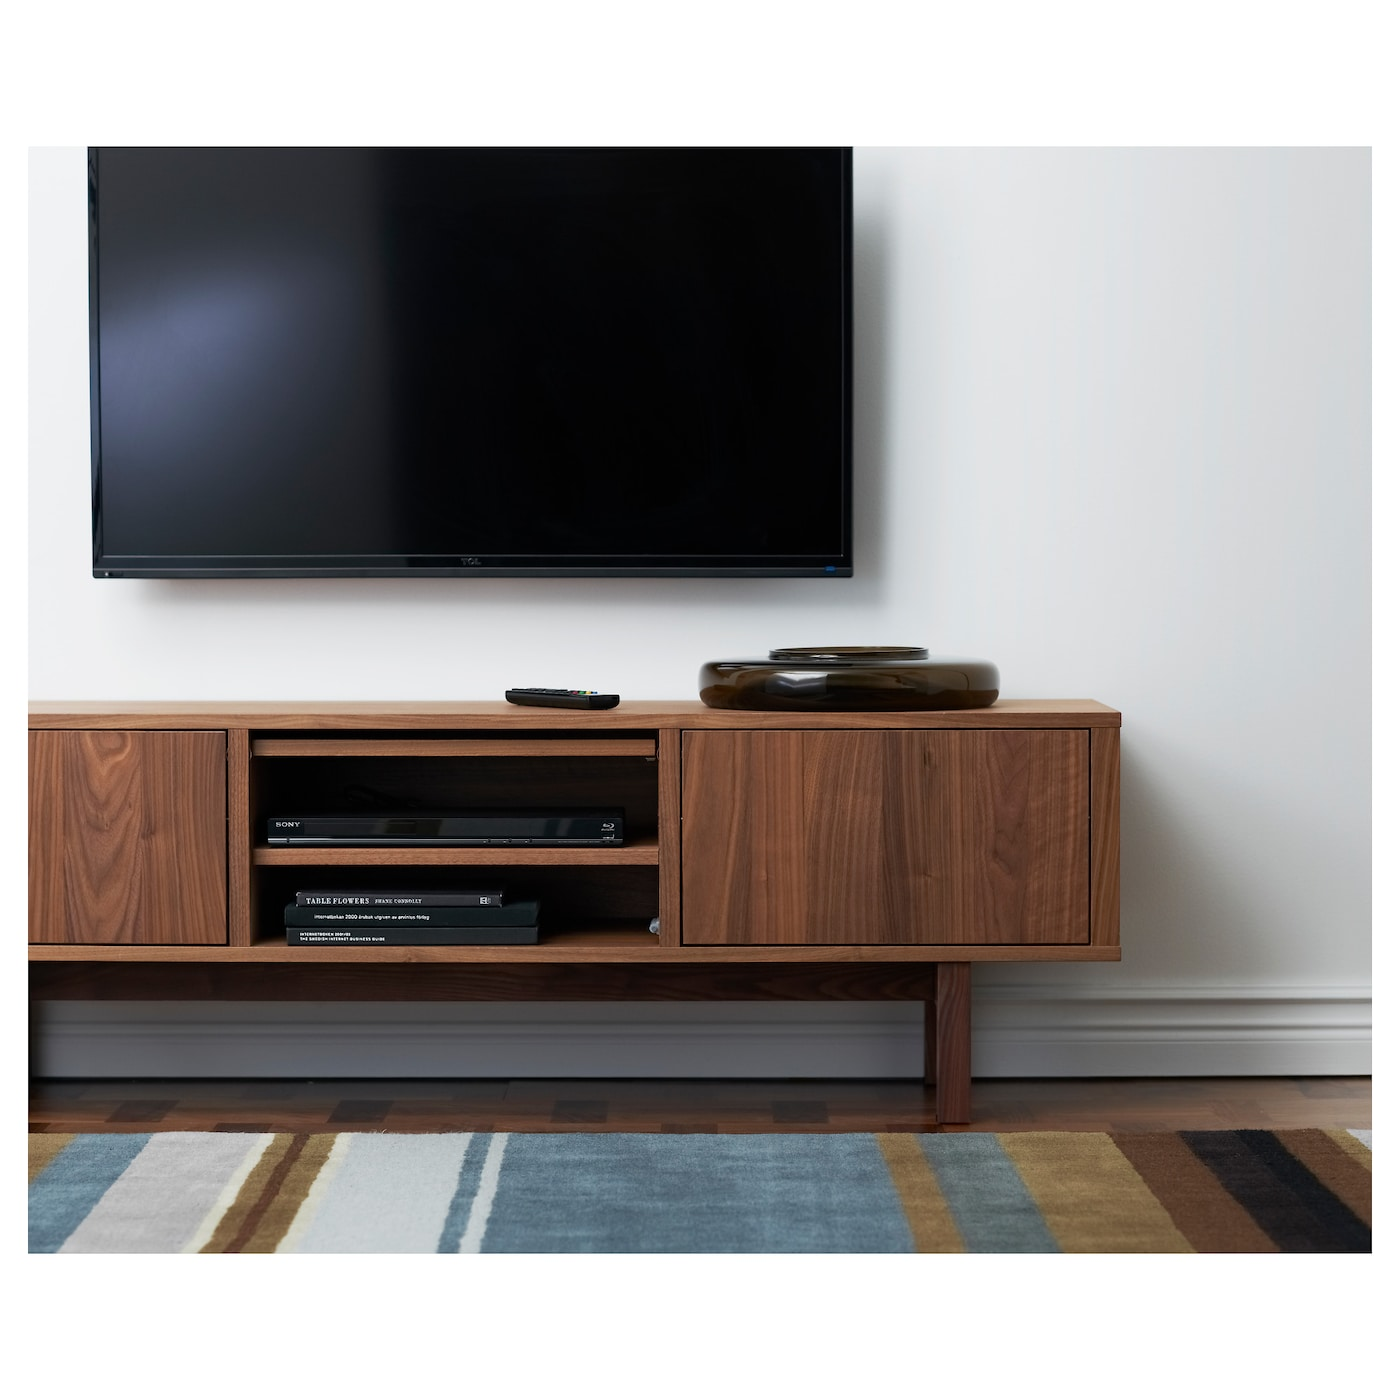 Stockholm tv bench walnut veneer 160 x 40 x 50 cm ikea - Mobile porta tv ikea ...